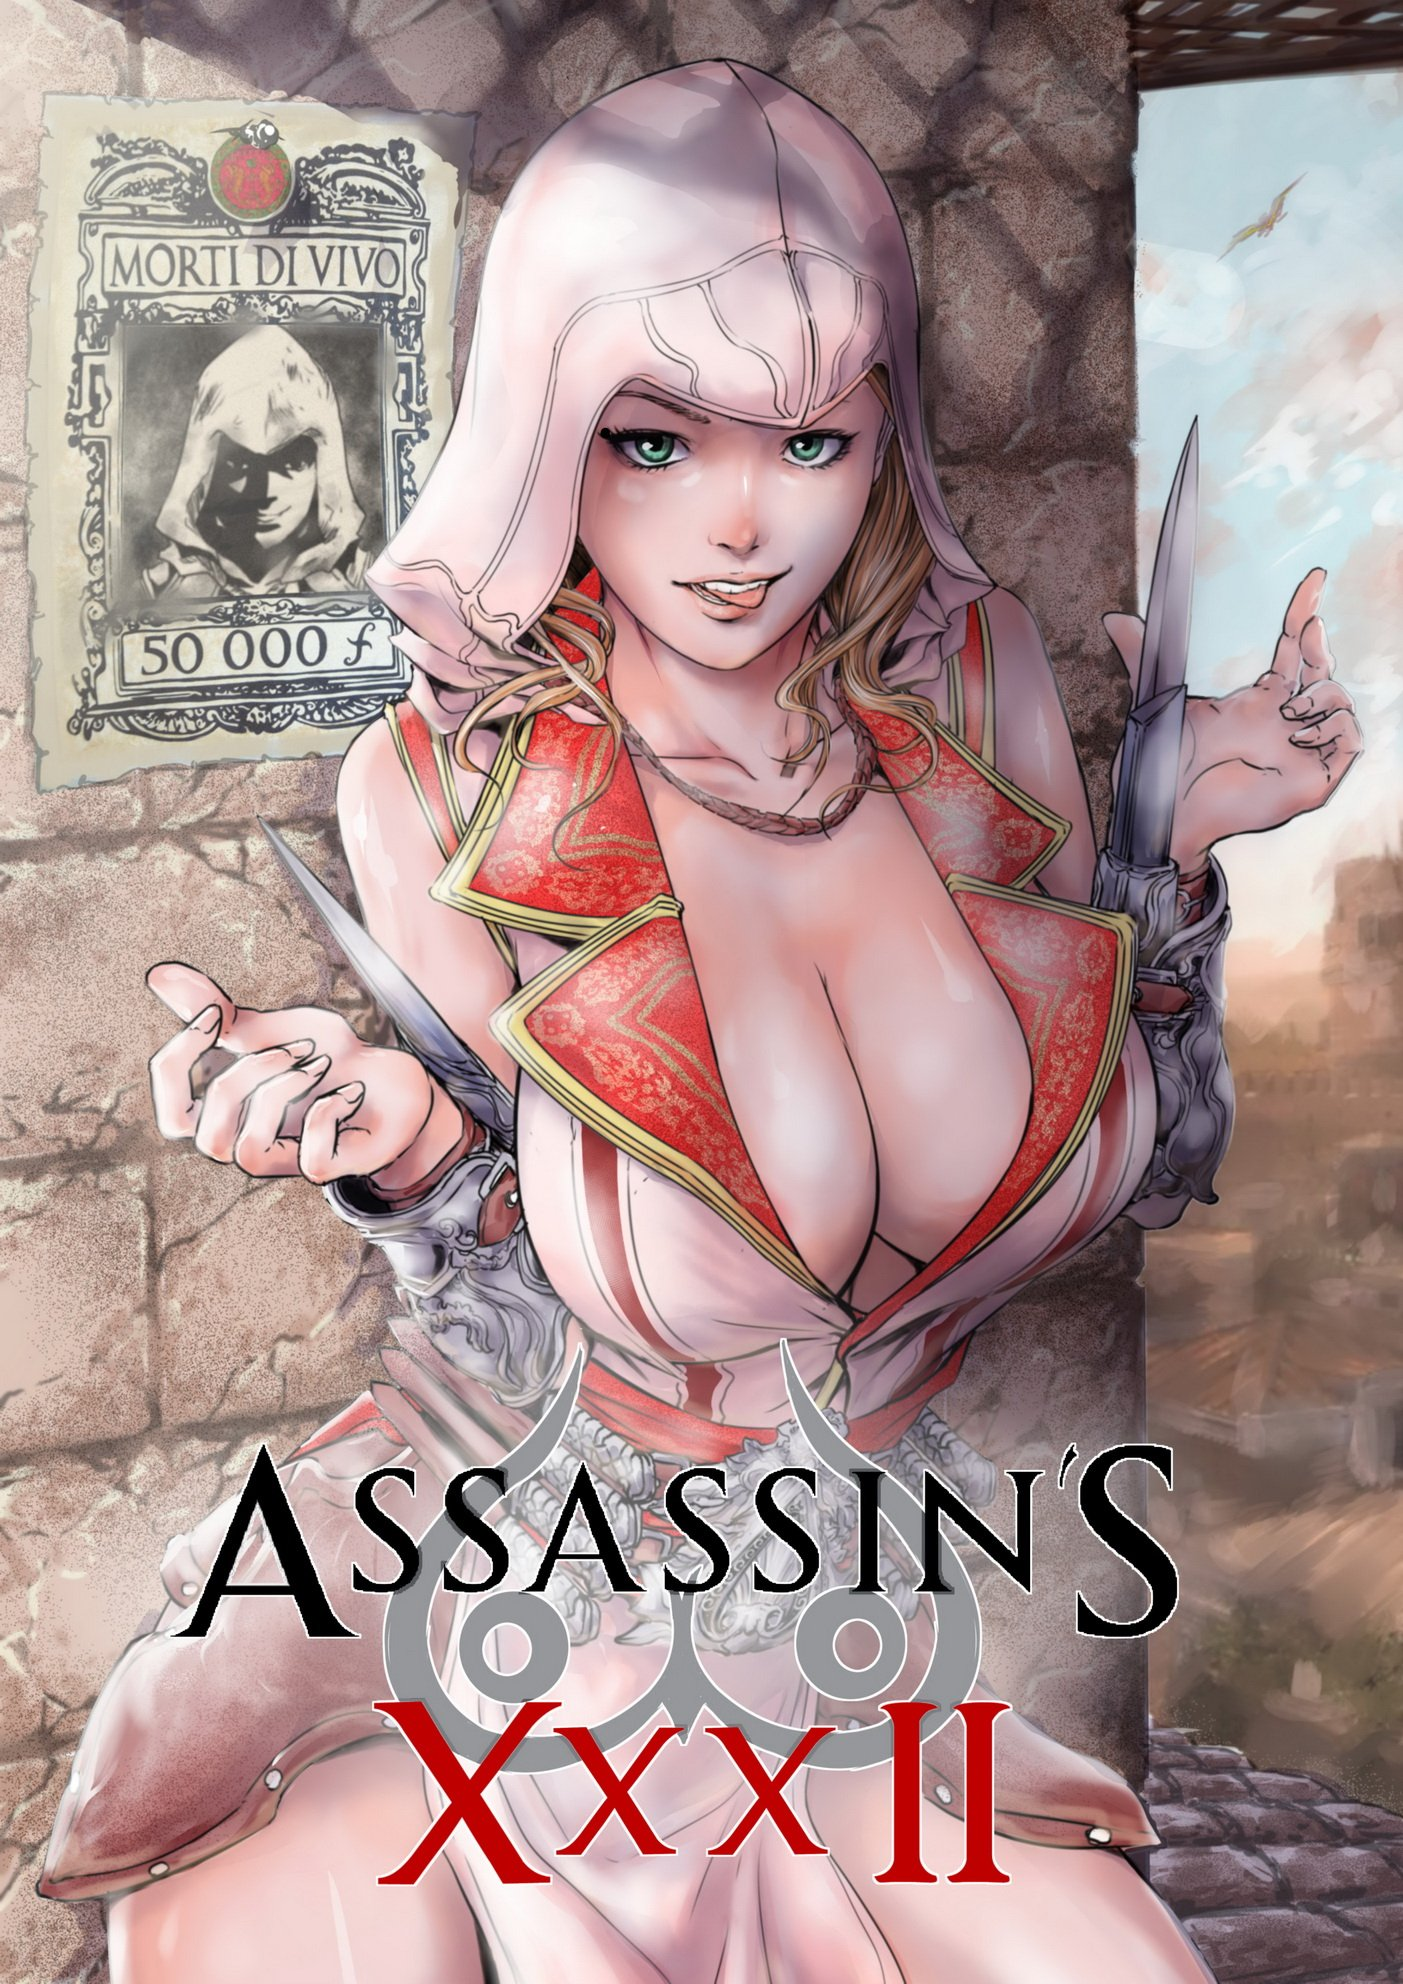 Asassin creed hentai photo hentai pictures